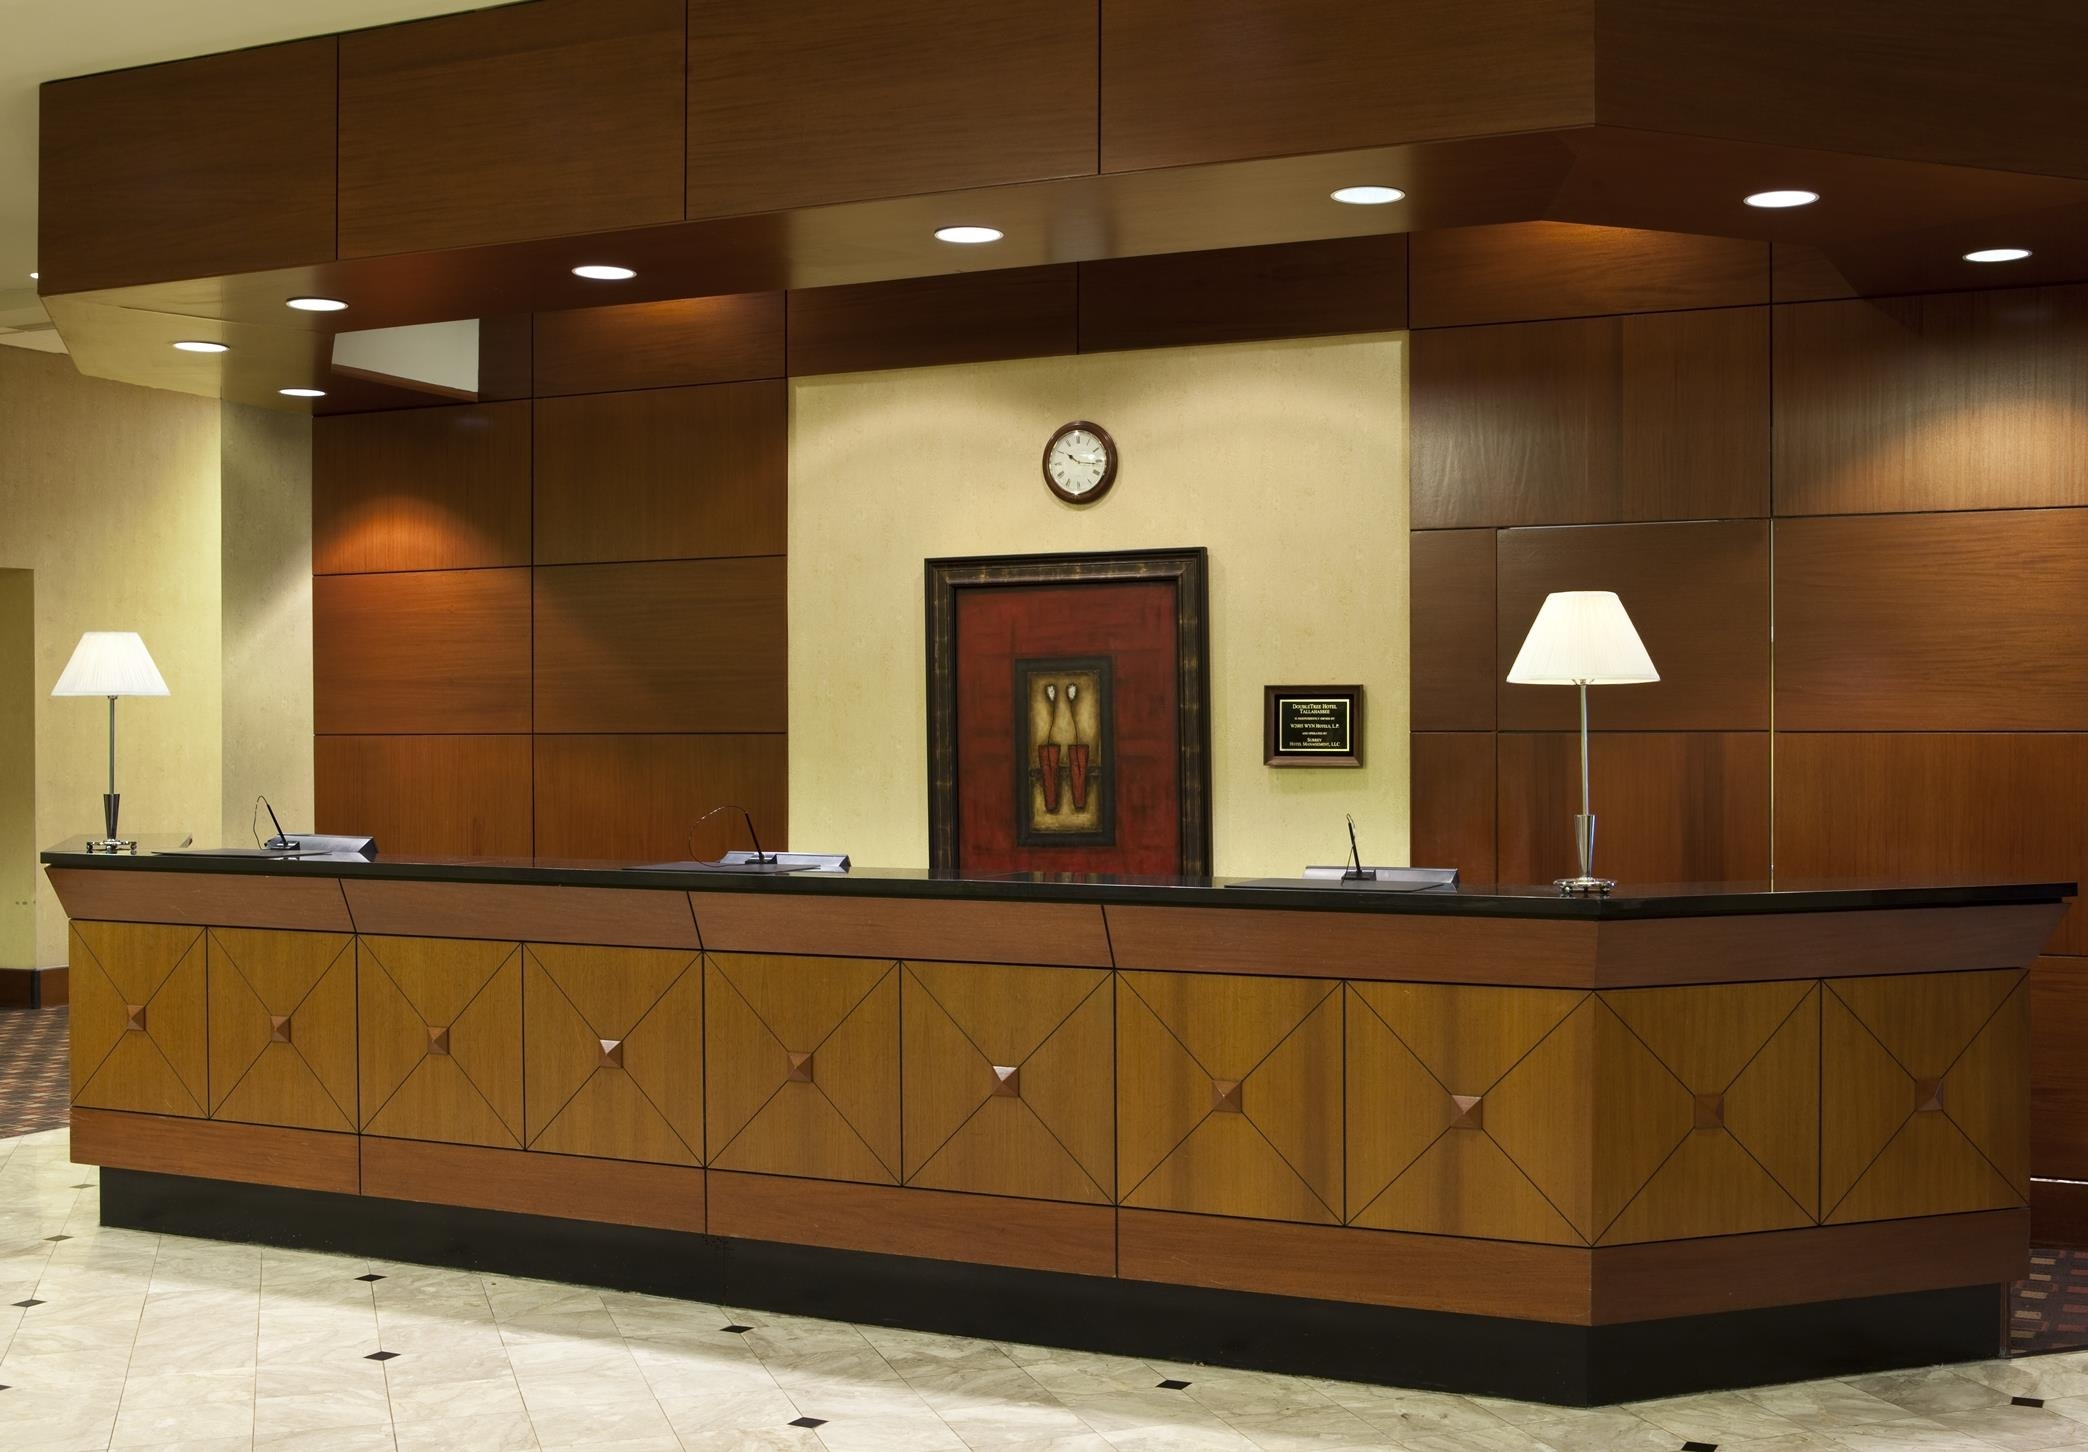 DoubleTree by Hilton Hotel Tallahassee image 3